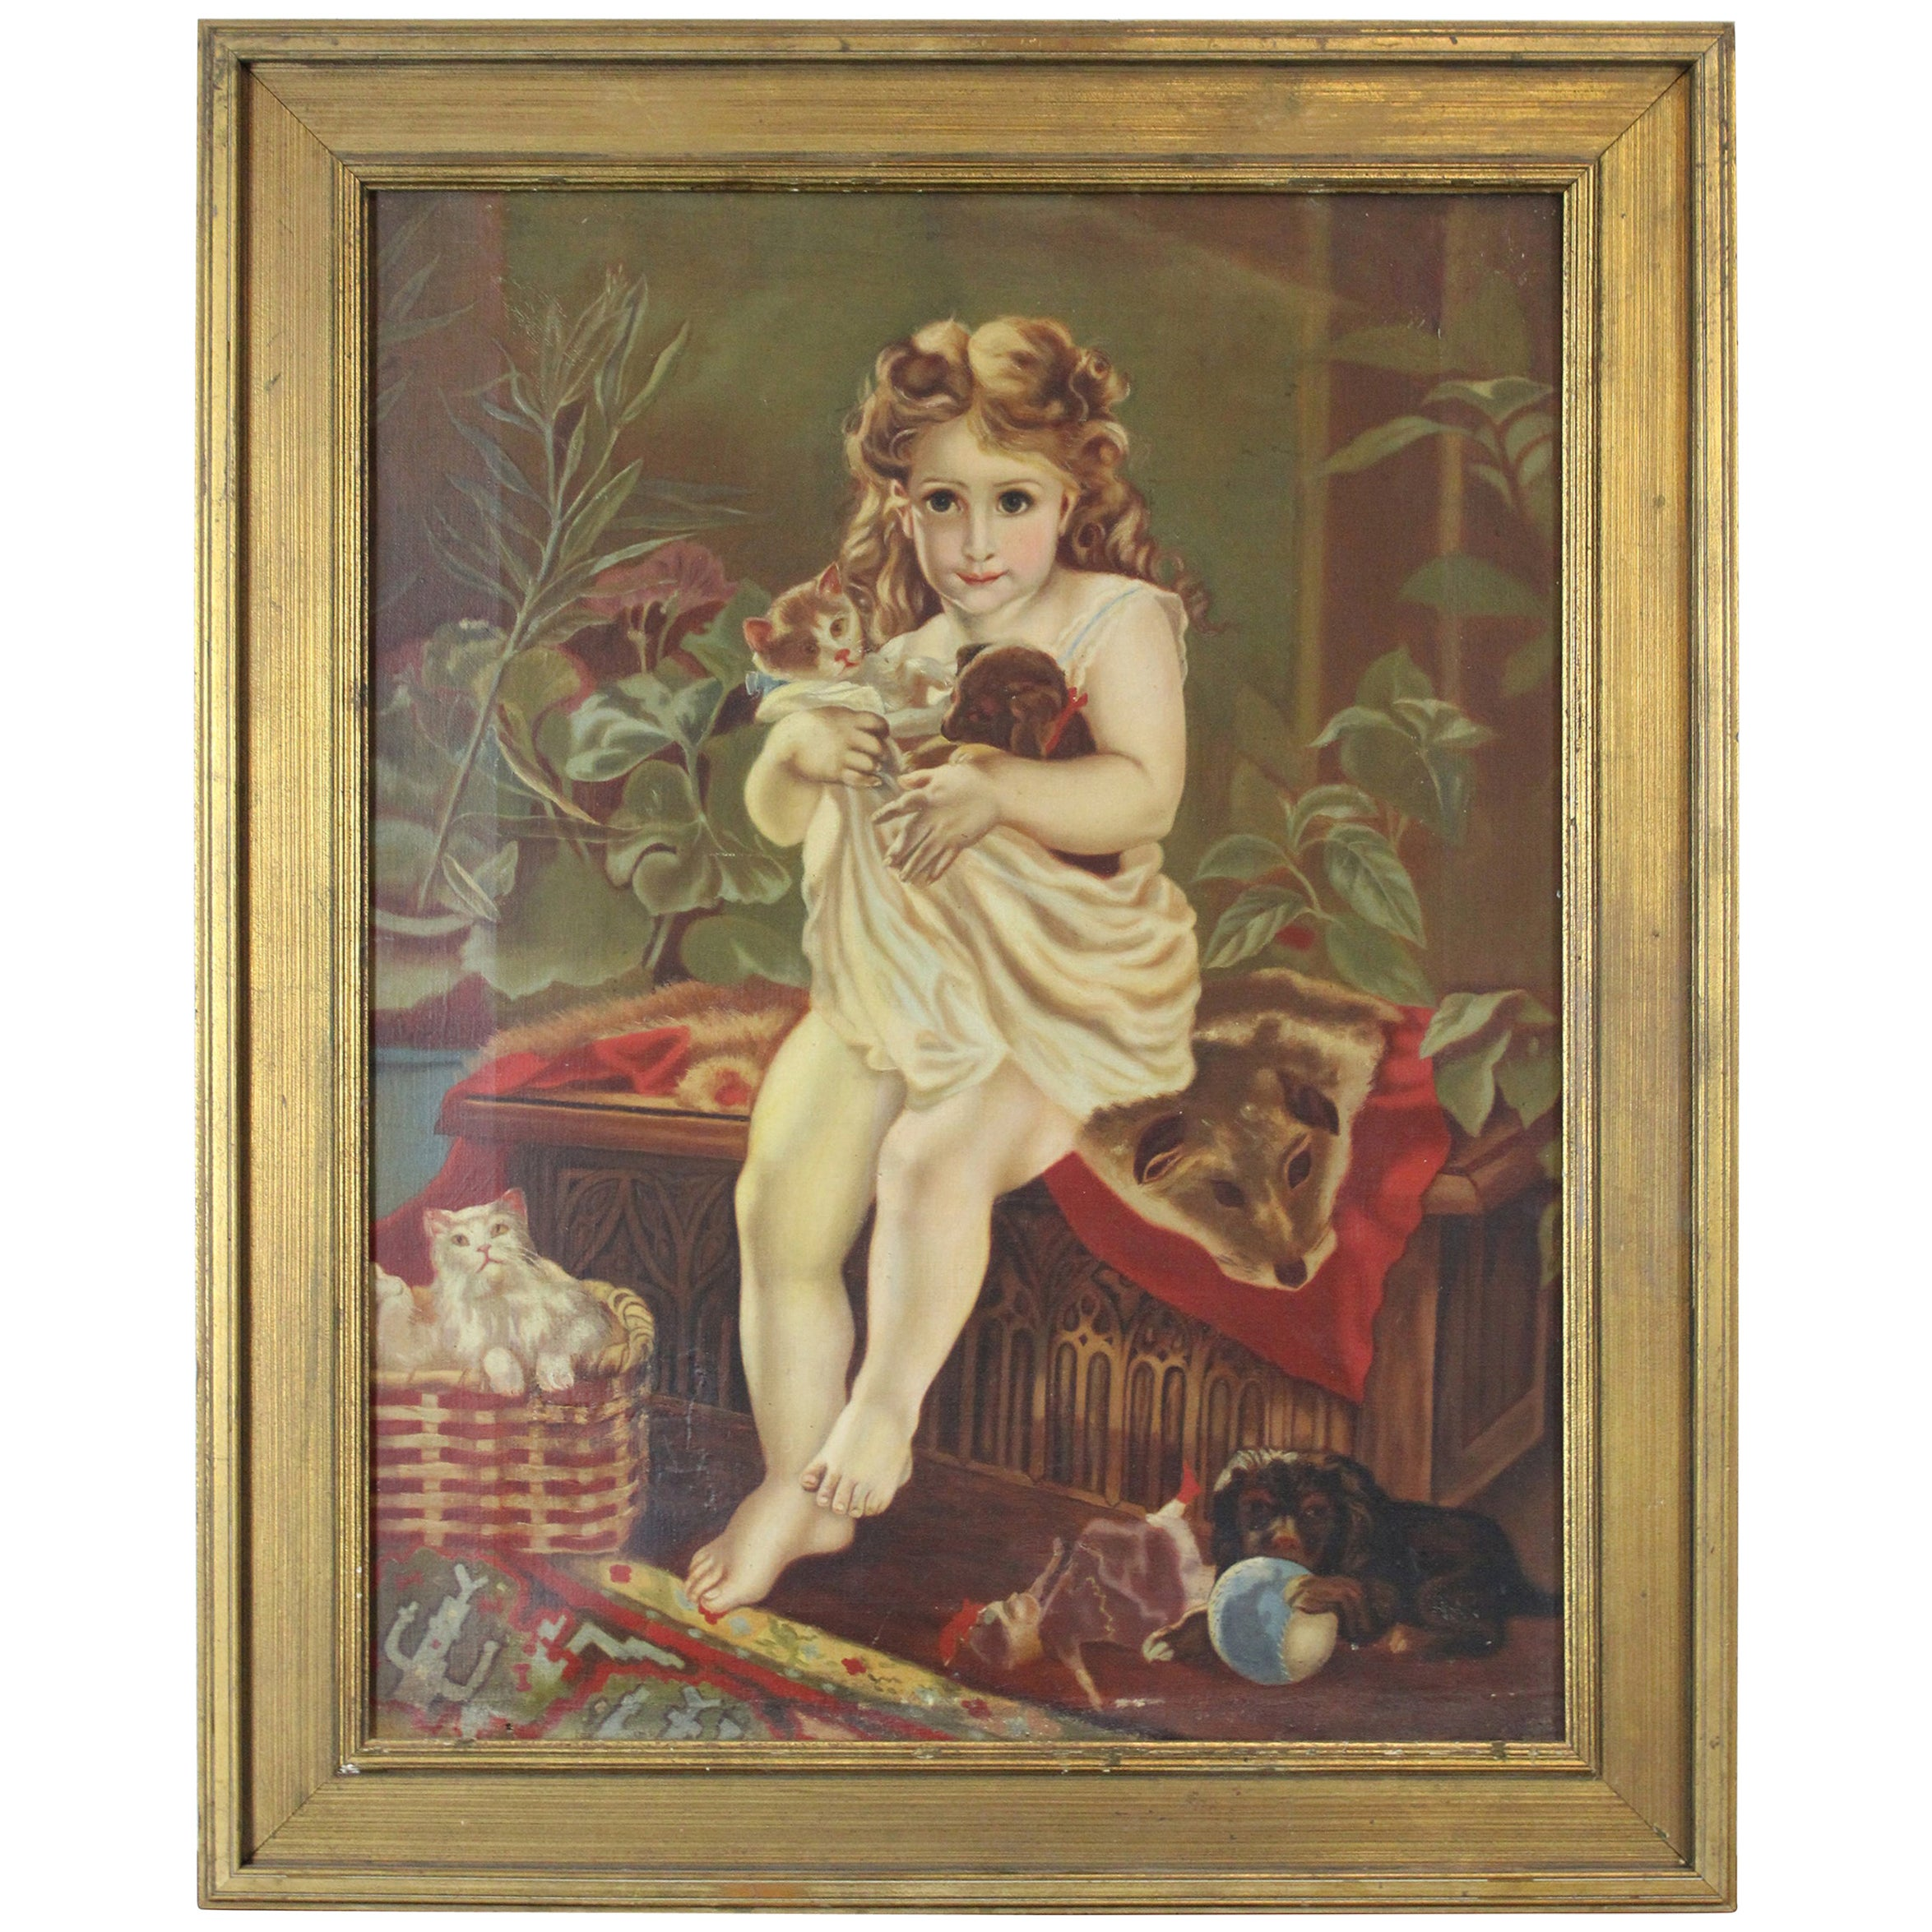 Antique Victorian Oil Portrait Painting of a Young Girl with Cats Dogs